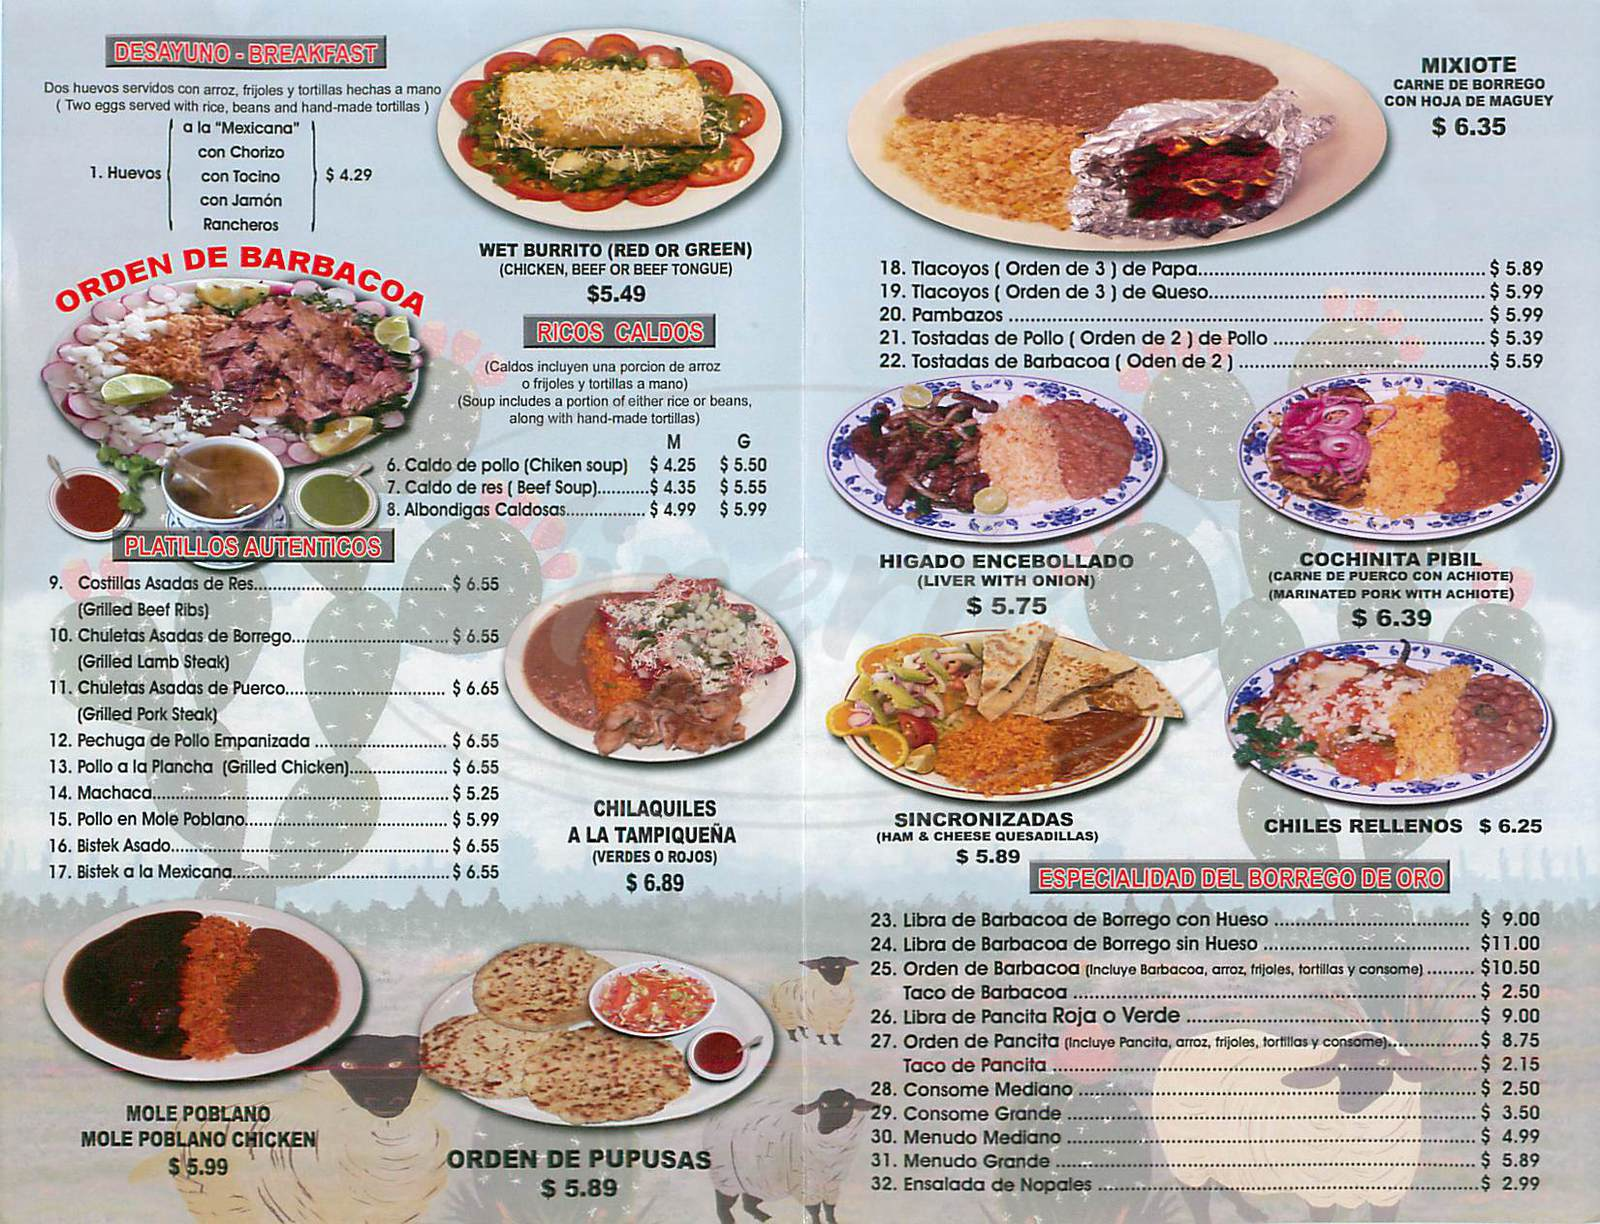 menu for El Borrego de Oro